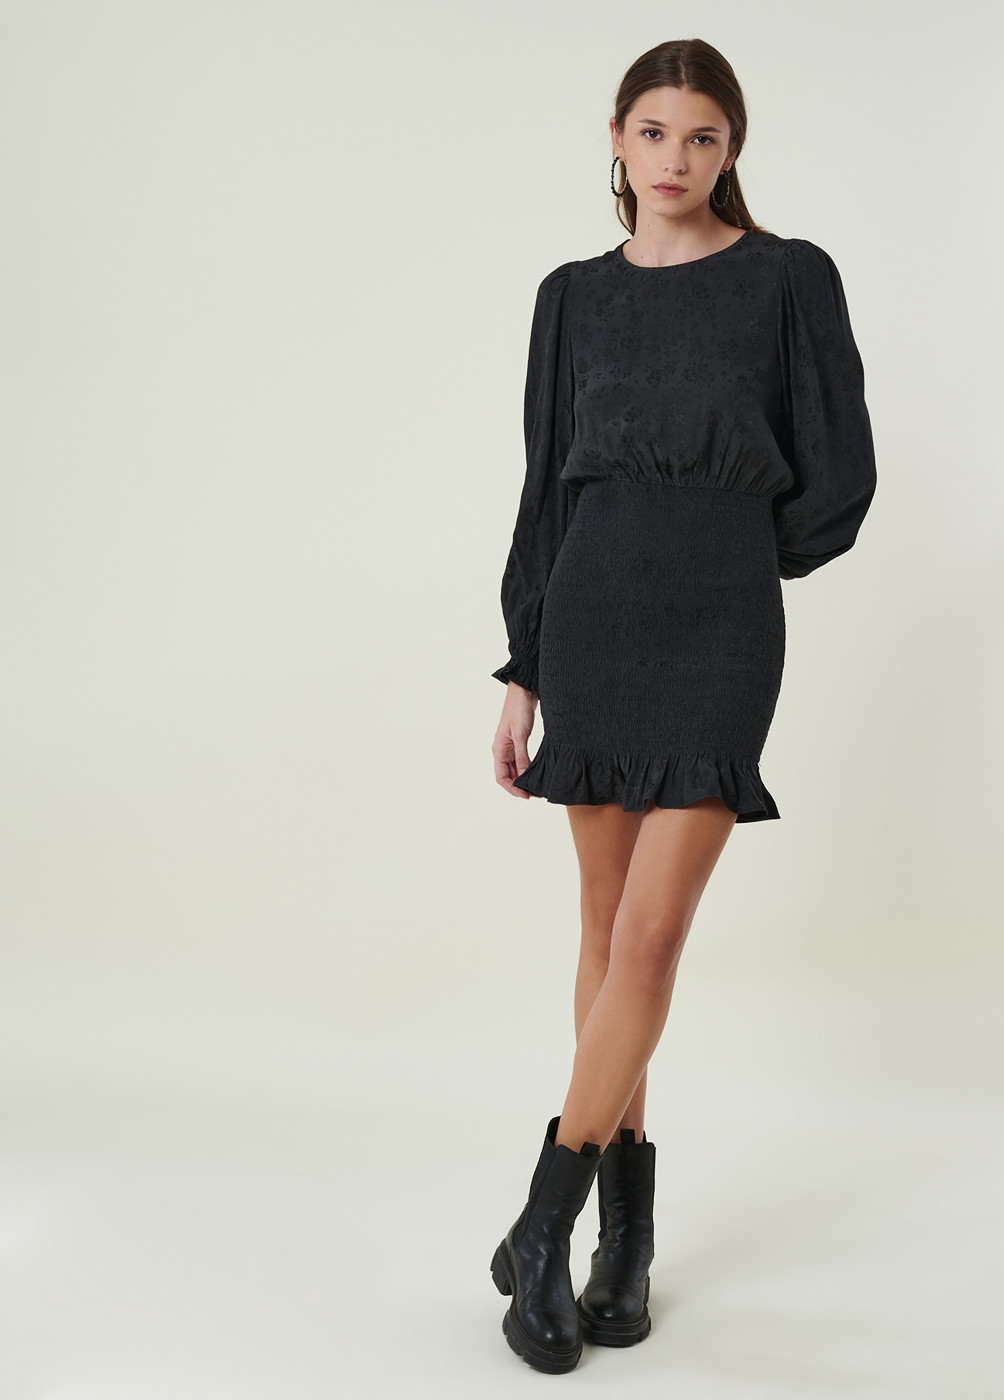 BELLA JACQUARD DRESS